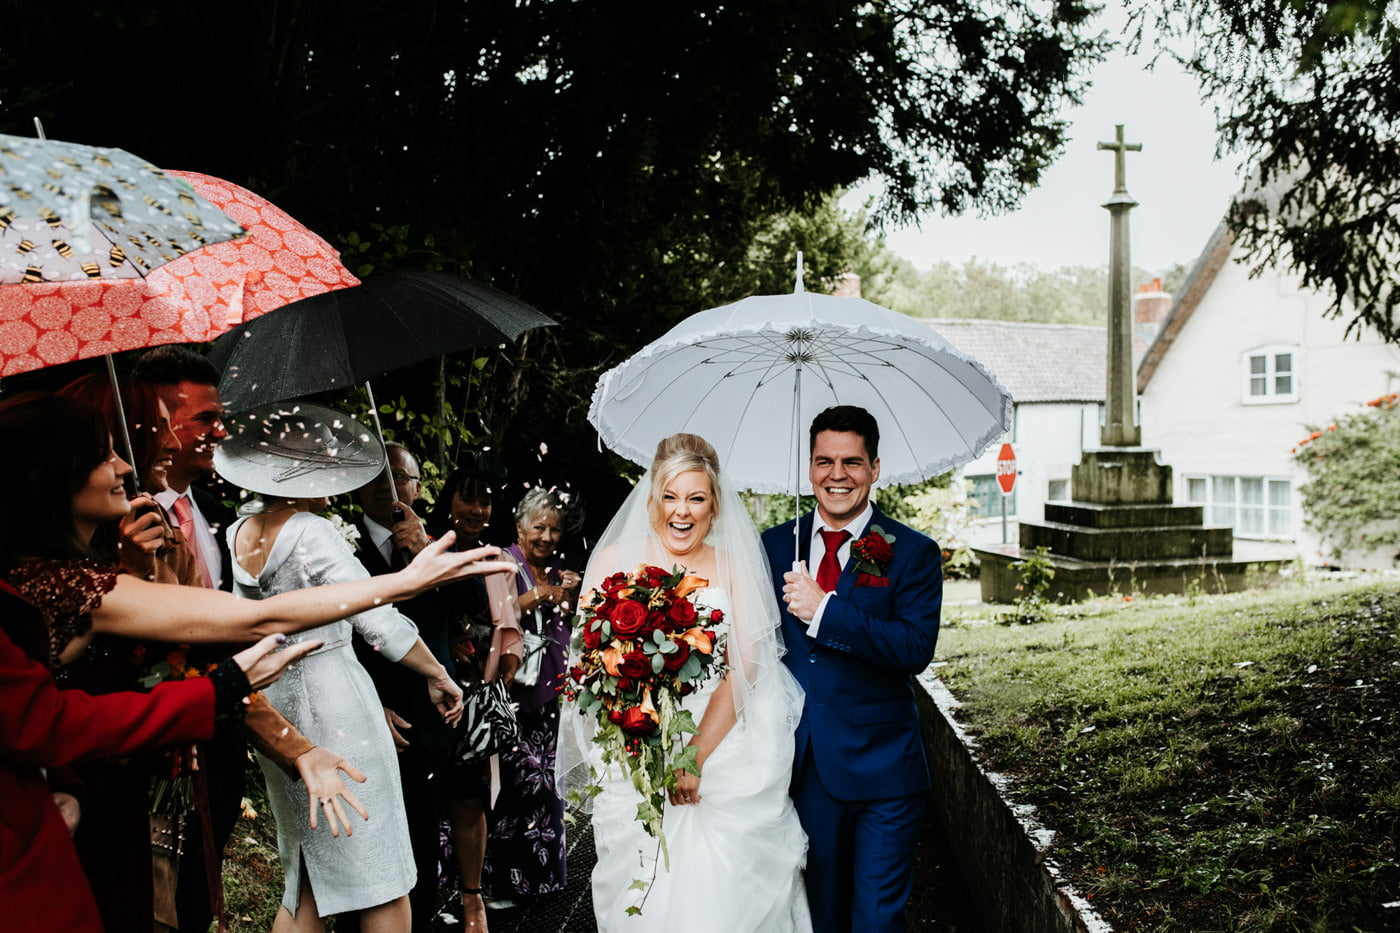 Natalie and Rob, Widbrook Grange, Wiltshire 29